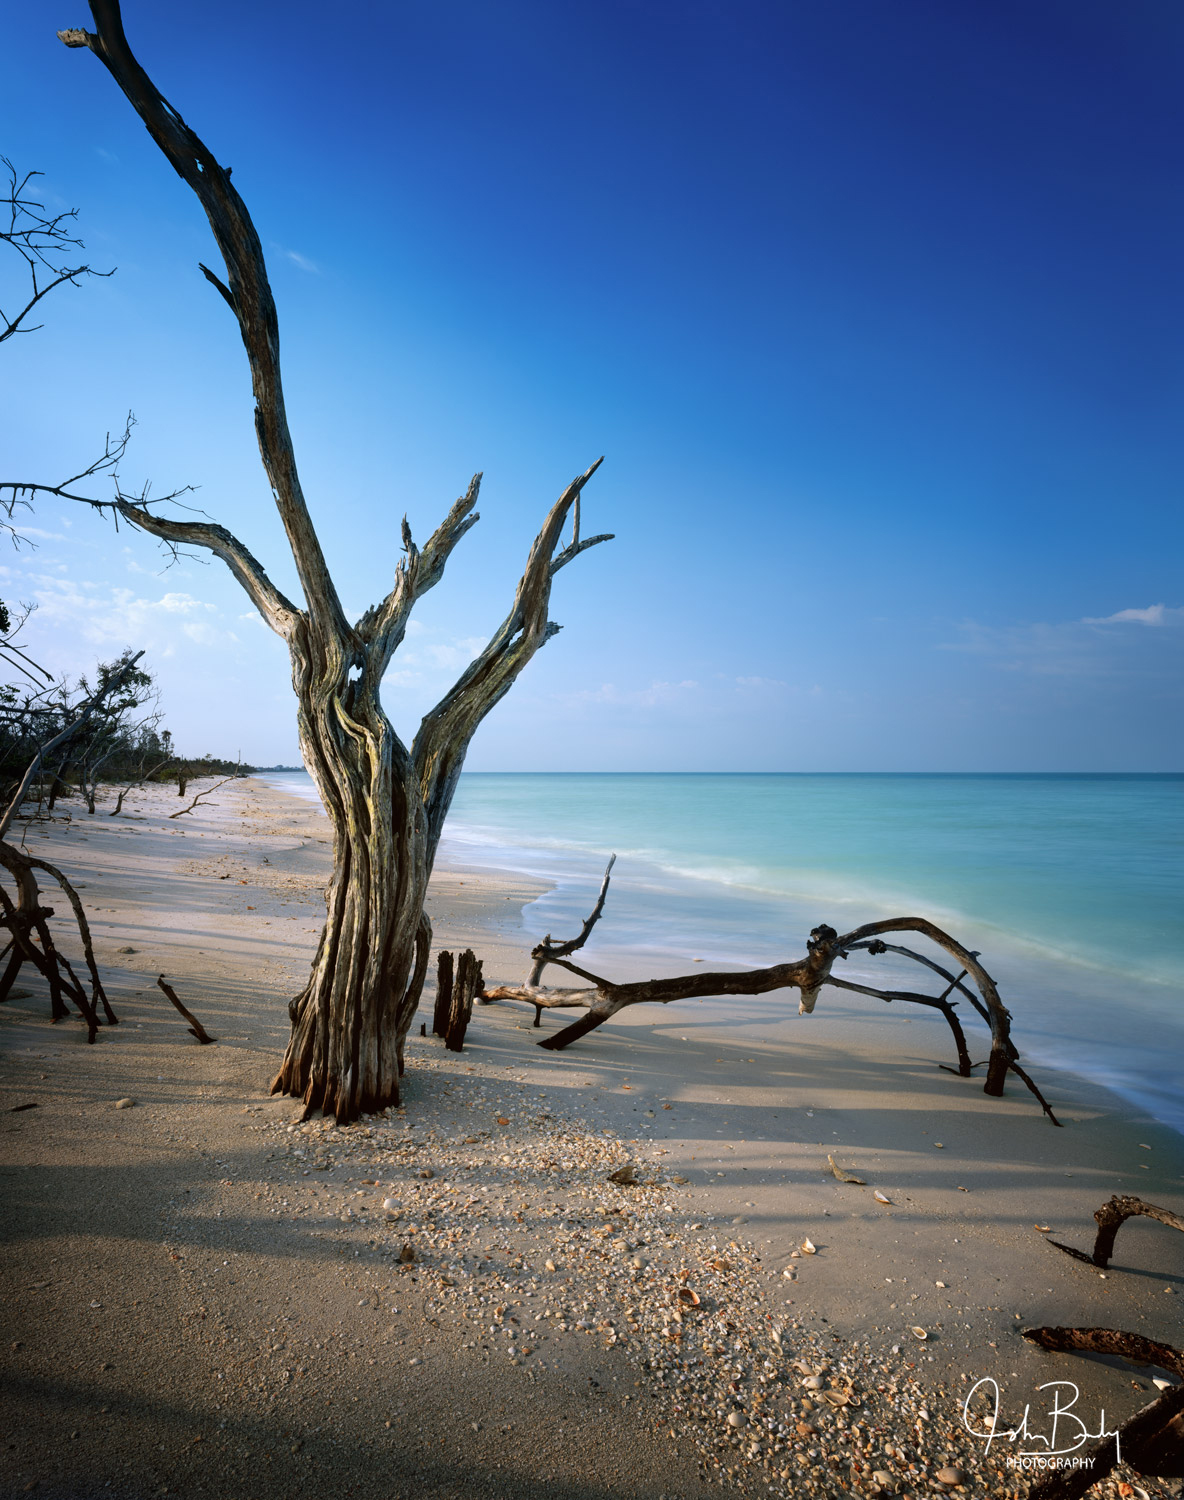 Cayo Costa is one of the Barrier islands protecting Florida's west coast. Because it is the first line of defense, it gets hammered...